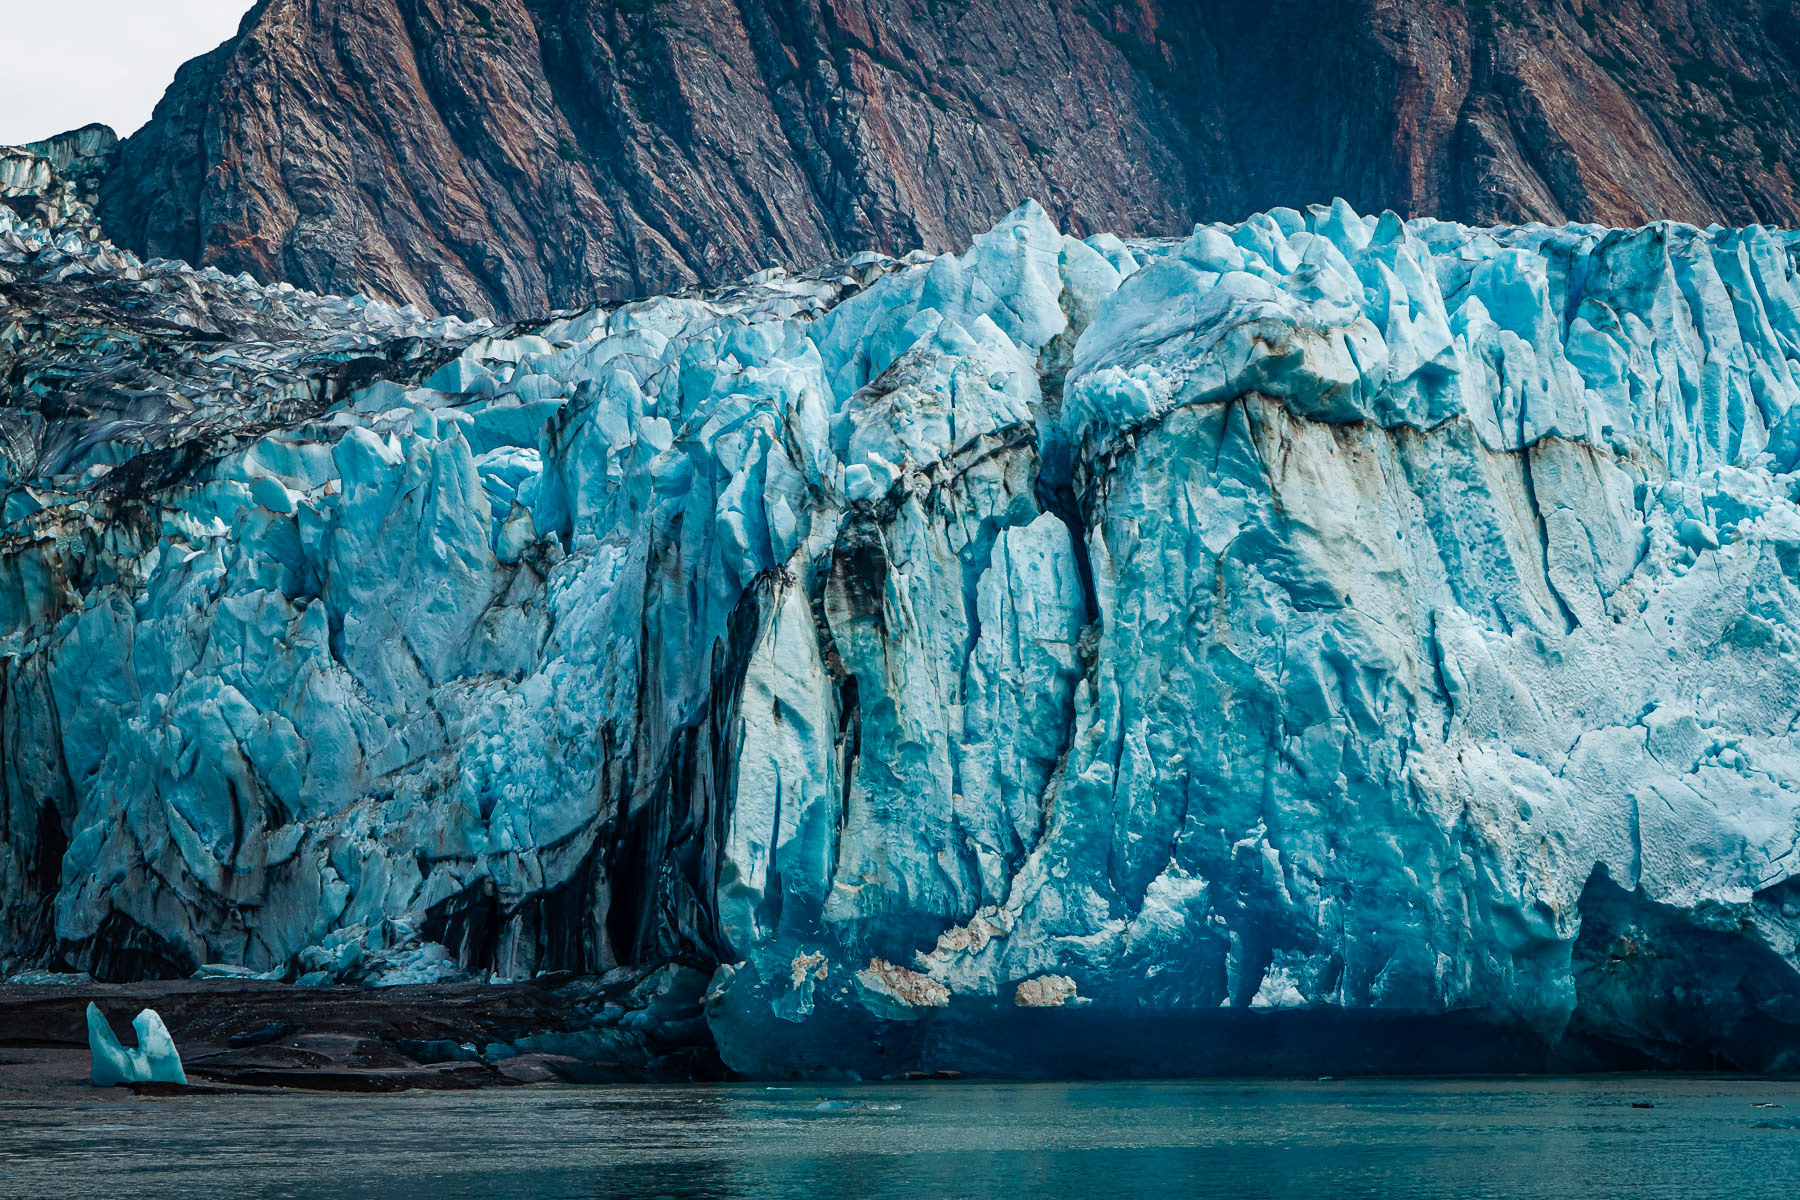 Detail of Alaska's North Sawyer Glacier at Tracy Arm Fjord.